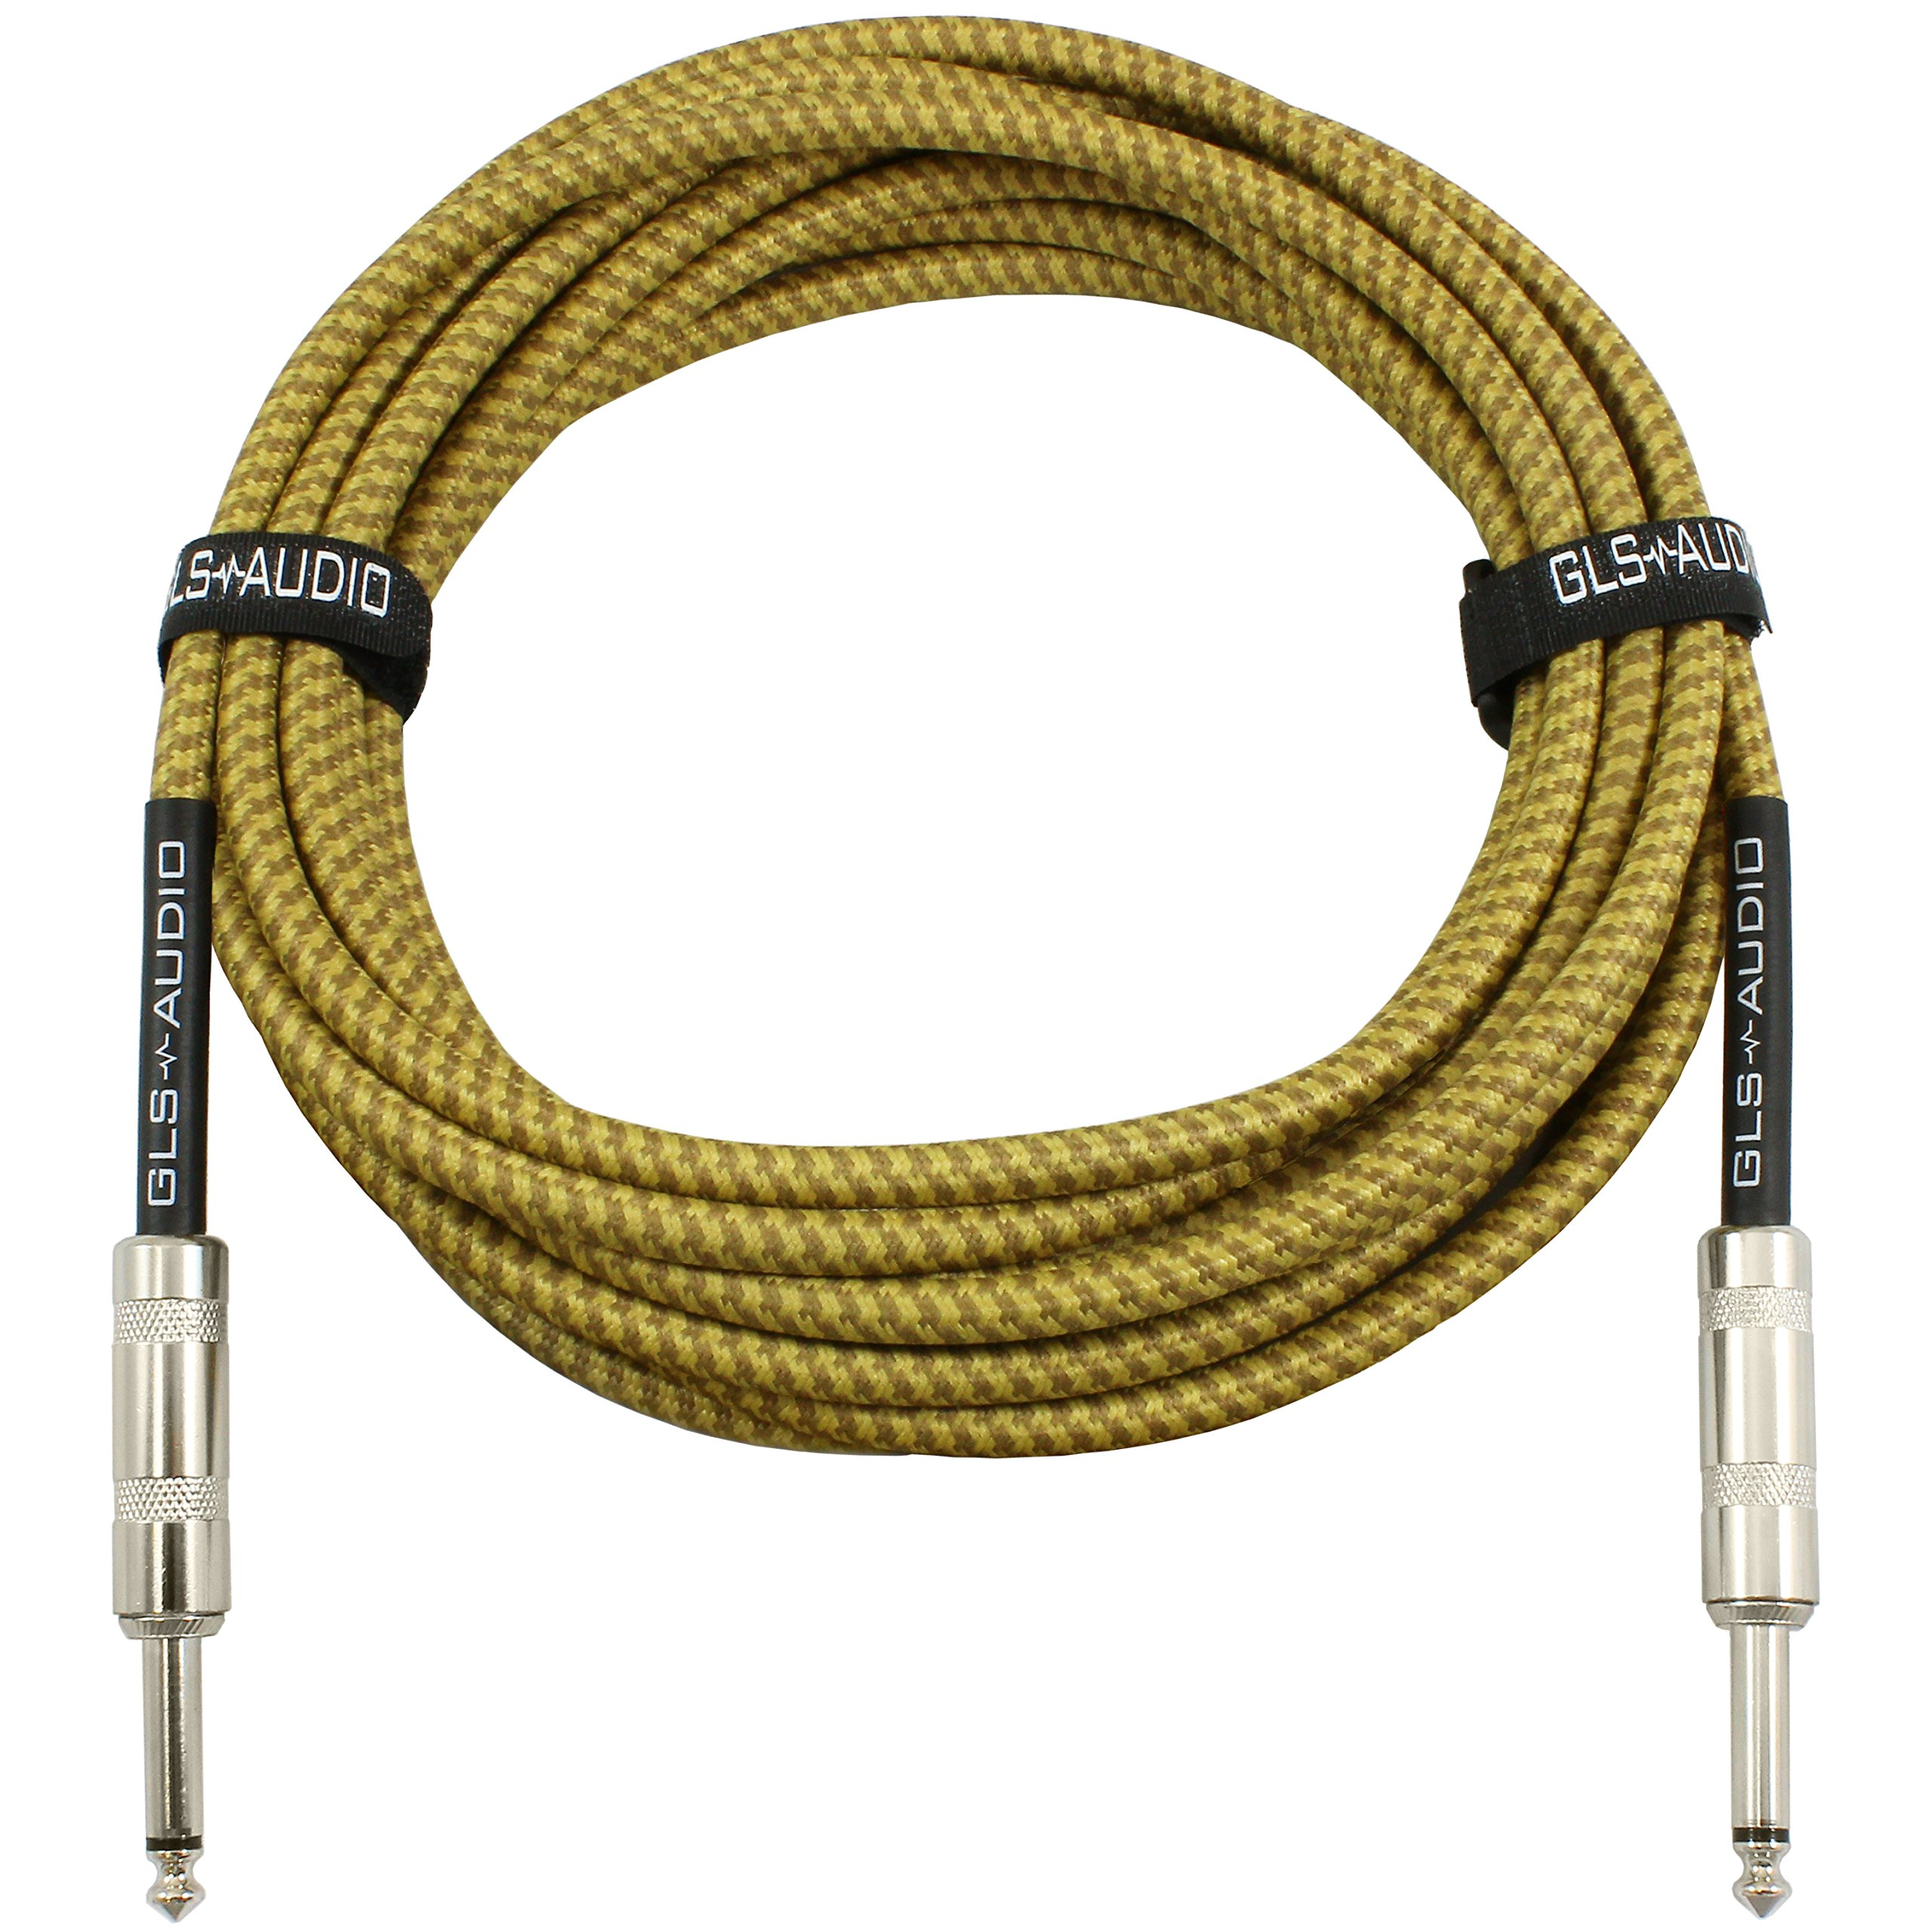 GLS Audio 20 Foot Guitar Instrument Cable - 1/4 Inch TS to 1/4 Inch TS 20 FT Brown Yellow Tweed Cloth Jacket - 20 Feet Pro Cord 20' Phono 6.3mm - SINGLE by GLS Audio